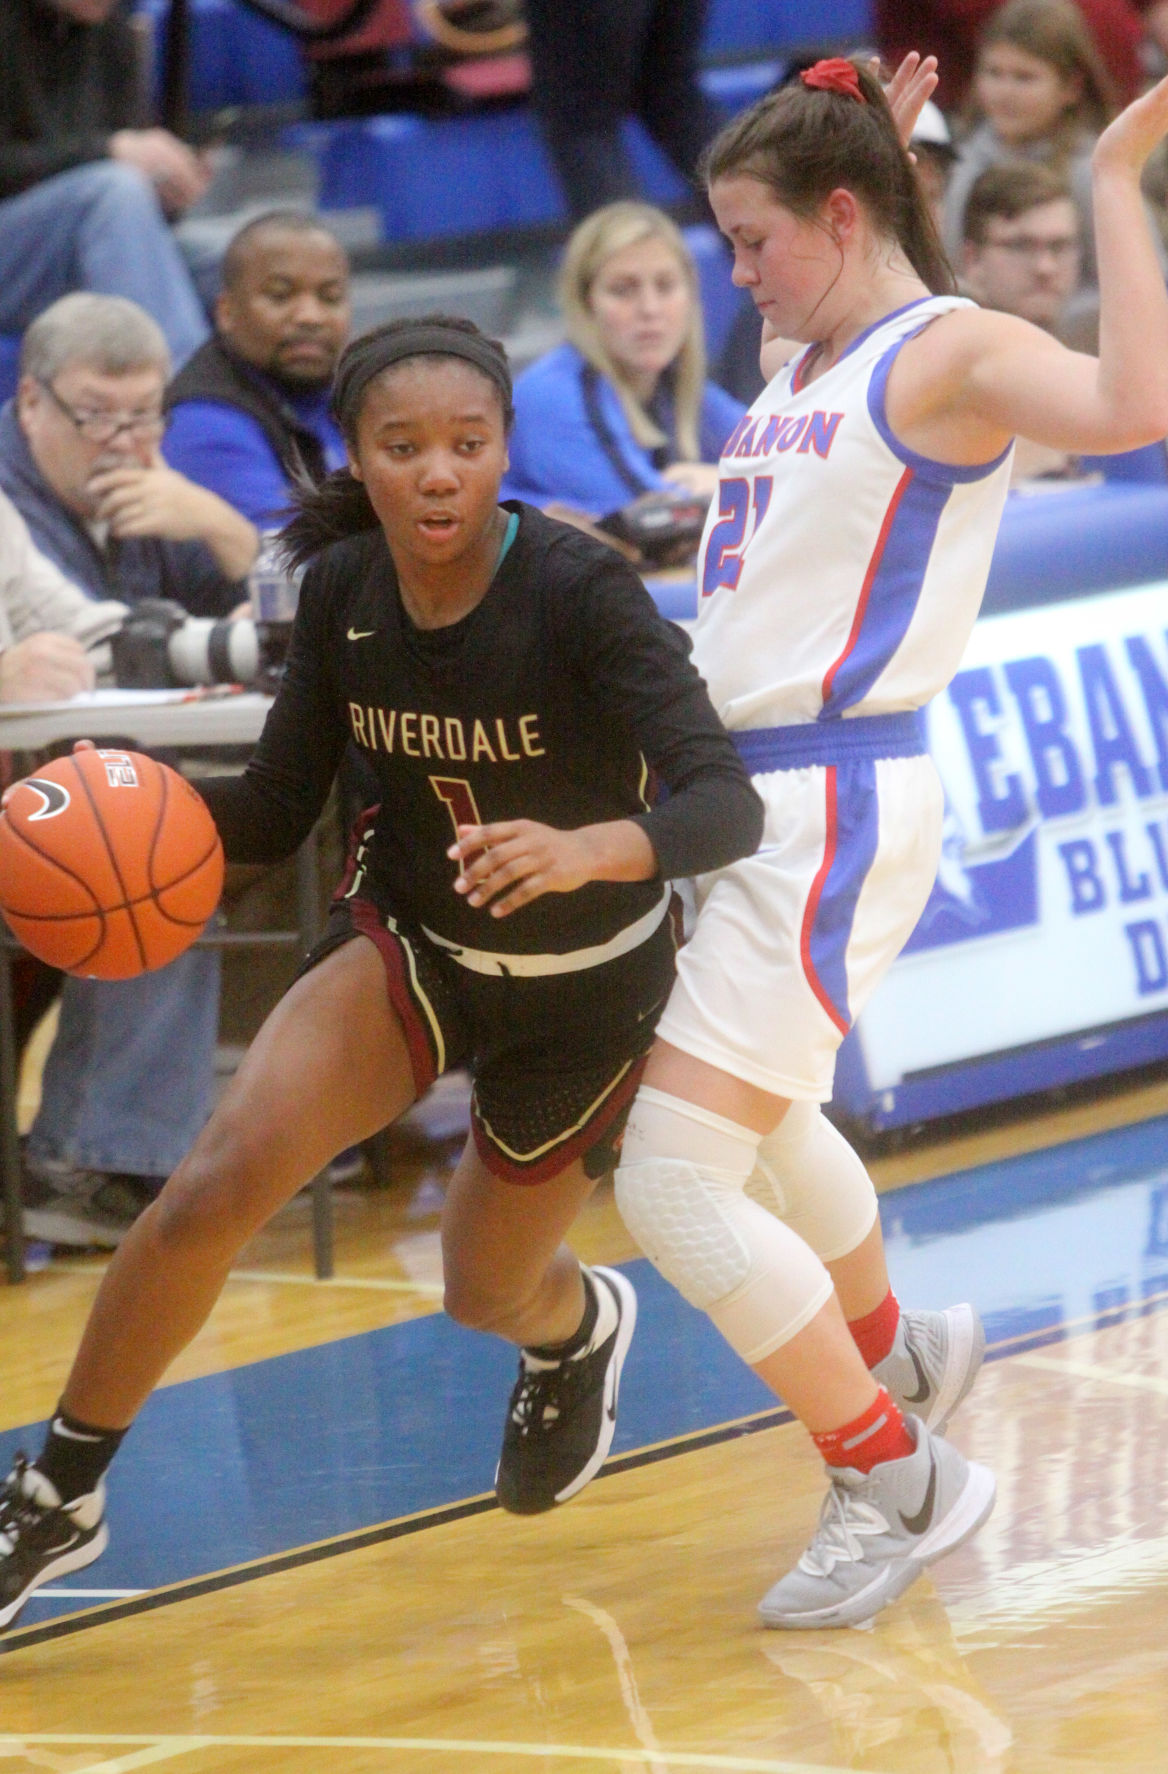 Riverdale basketball dealt two losses at Lebanon